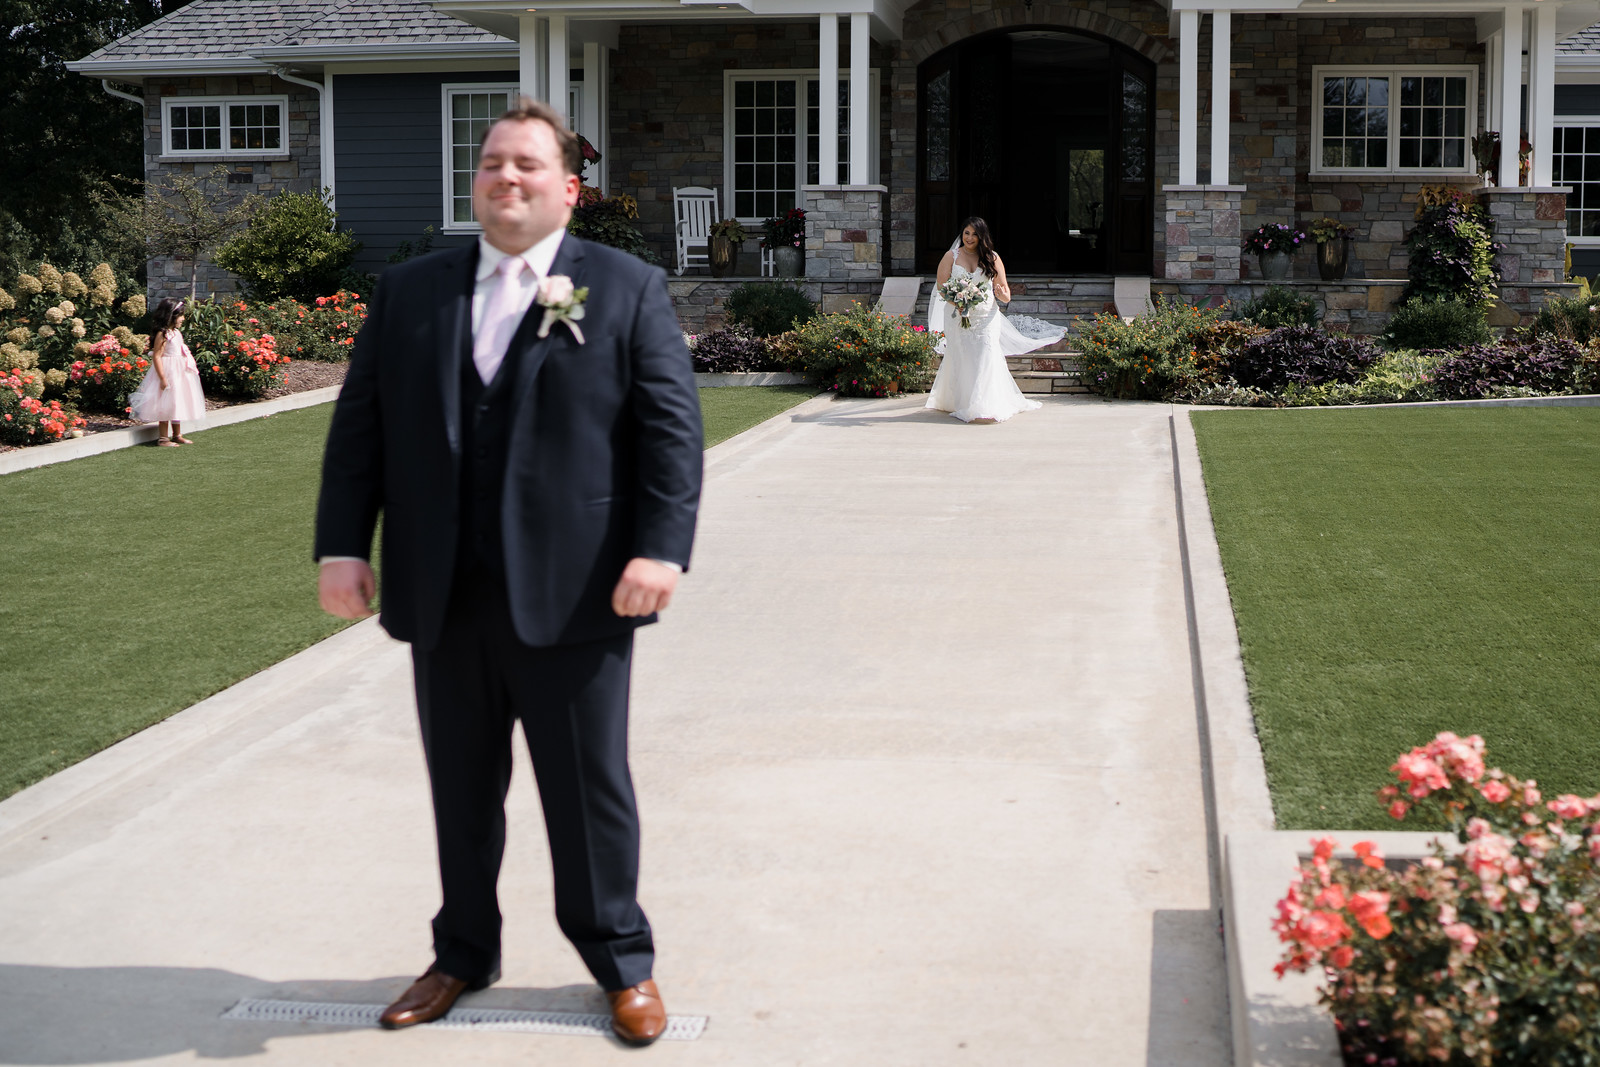 Bride walks towards her groom, the groom has a big smile on his face